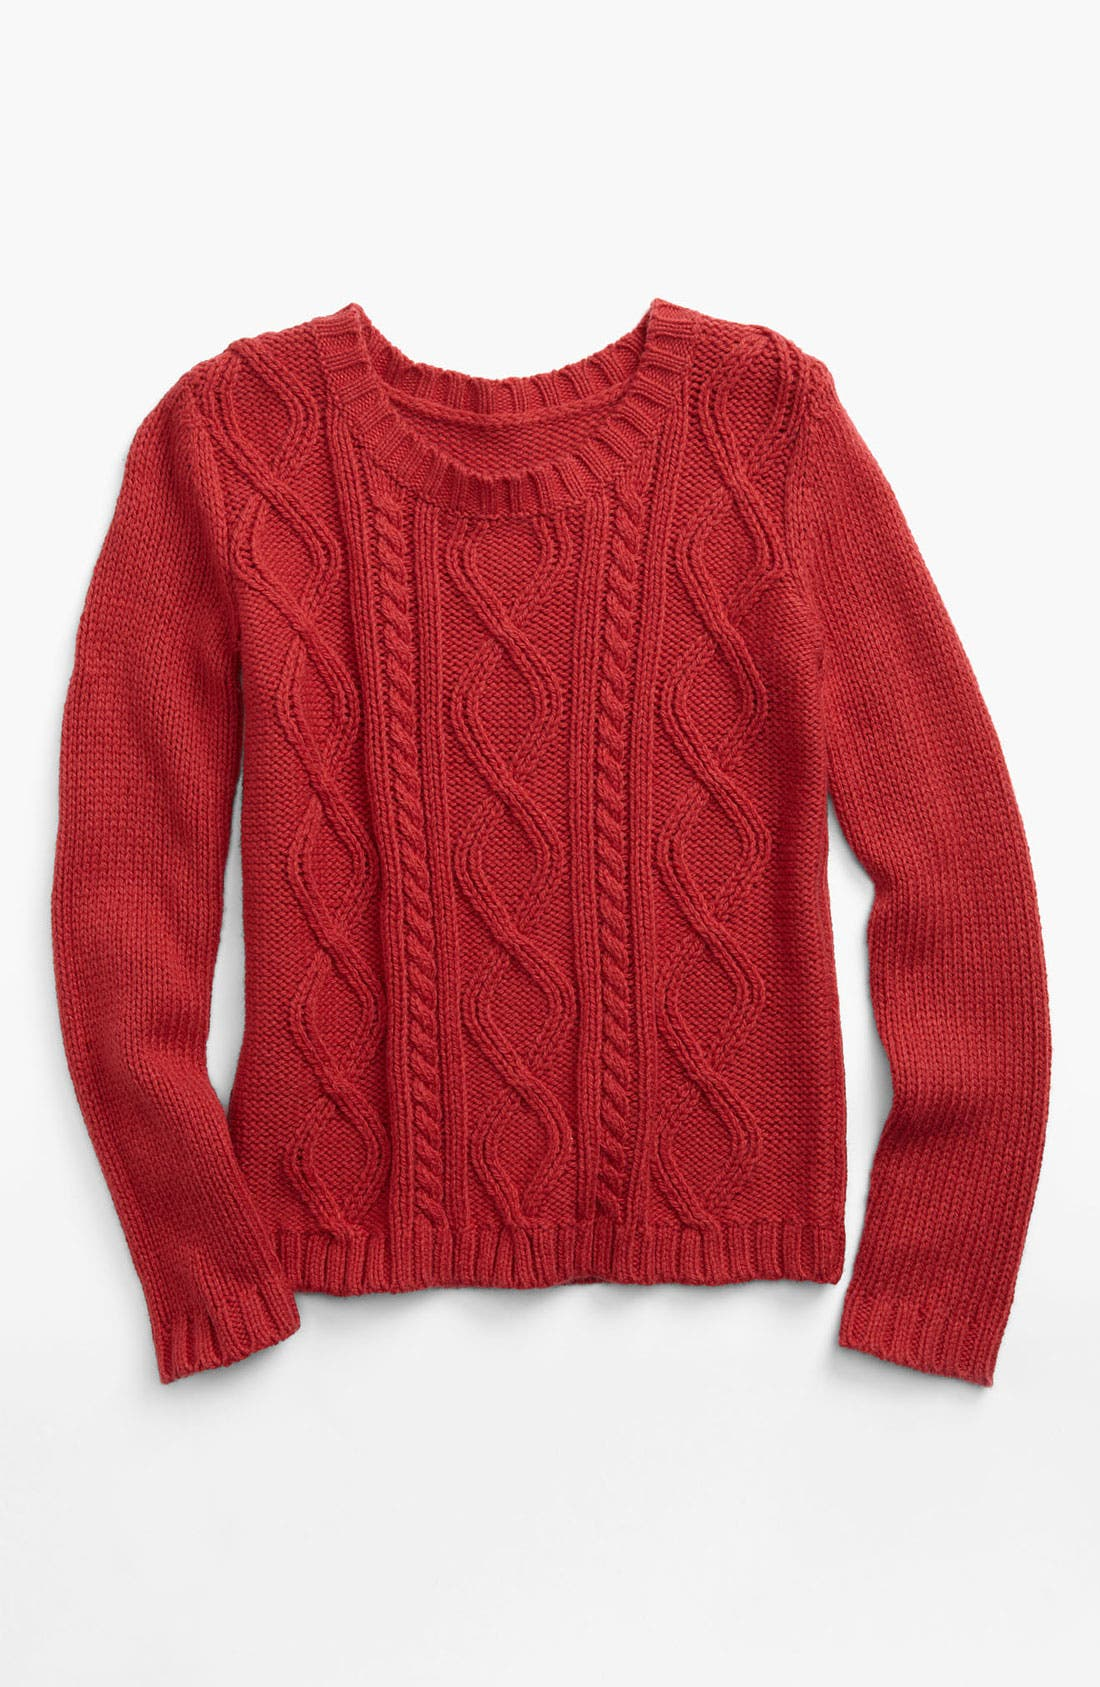 Alternate Image 1 Selected - Tucker + Tate 'Melody' Cable Knit Sweater (Big Girls)